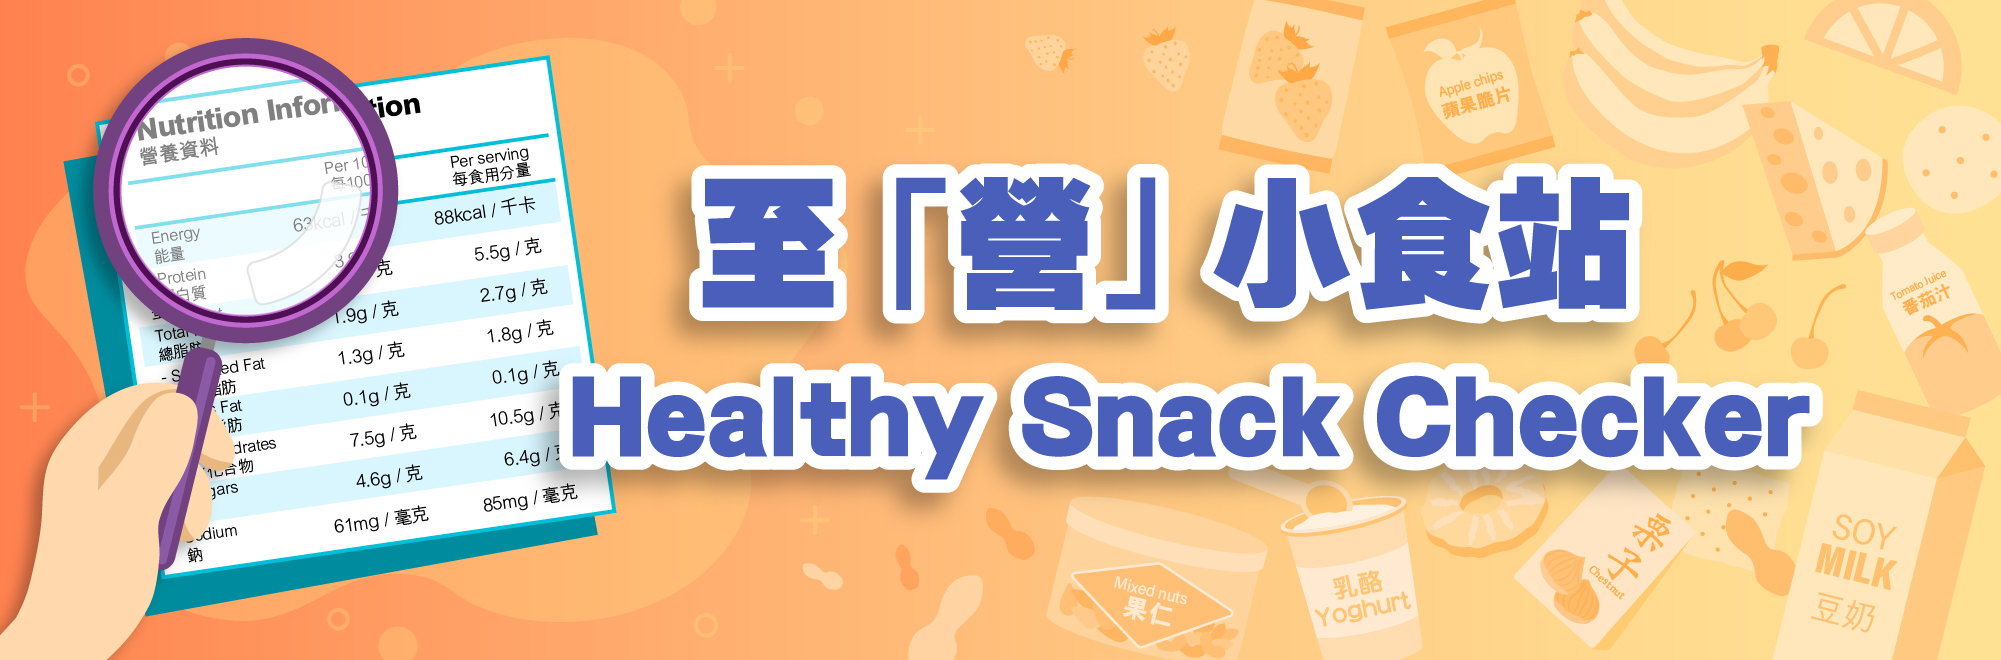 Snack Check mobile application